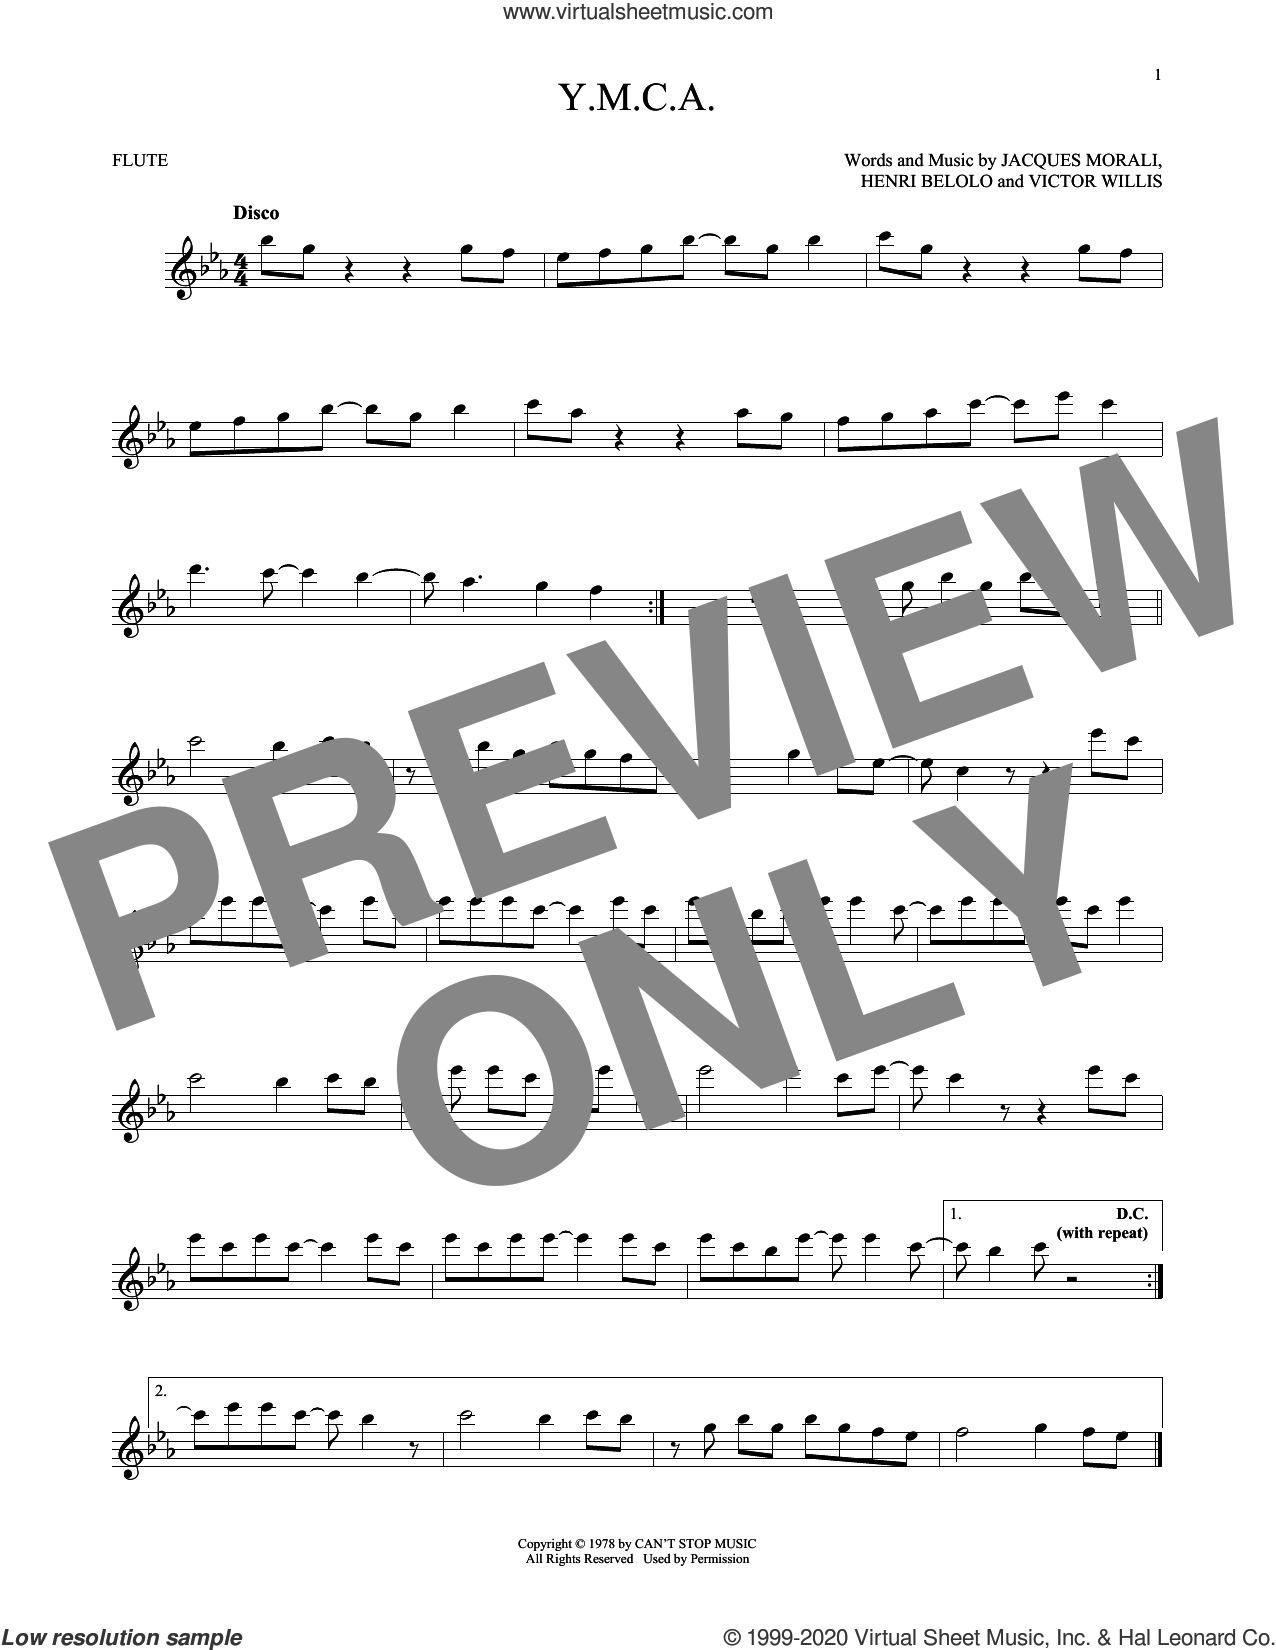 Y.M.C.A. sheet music for flute solo by Village People, Henri Belolo, Jacques Morali and Victor Willis, intermediate skill level